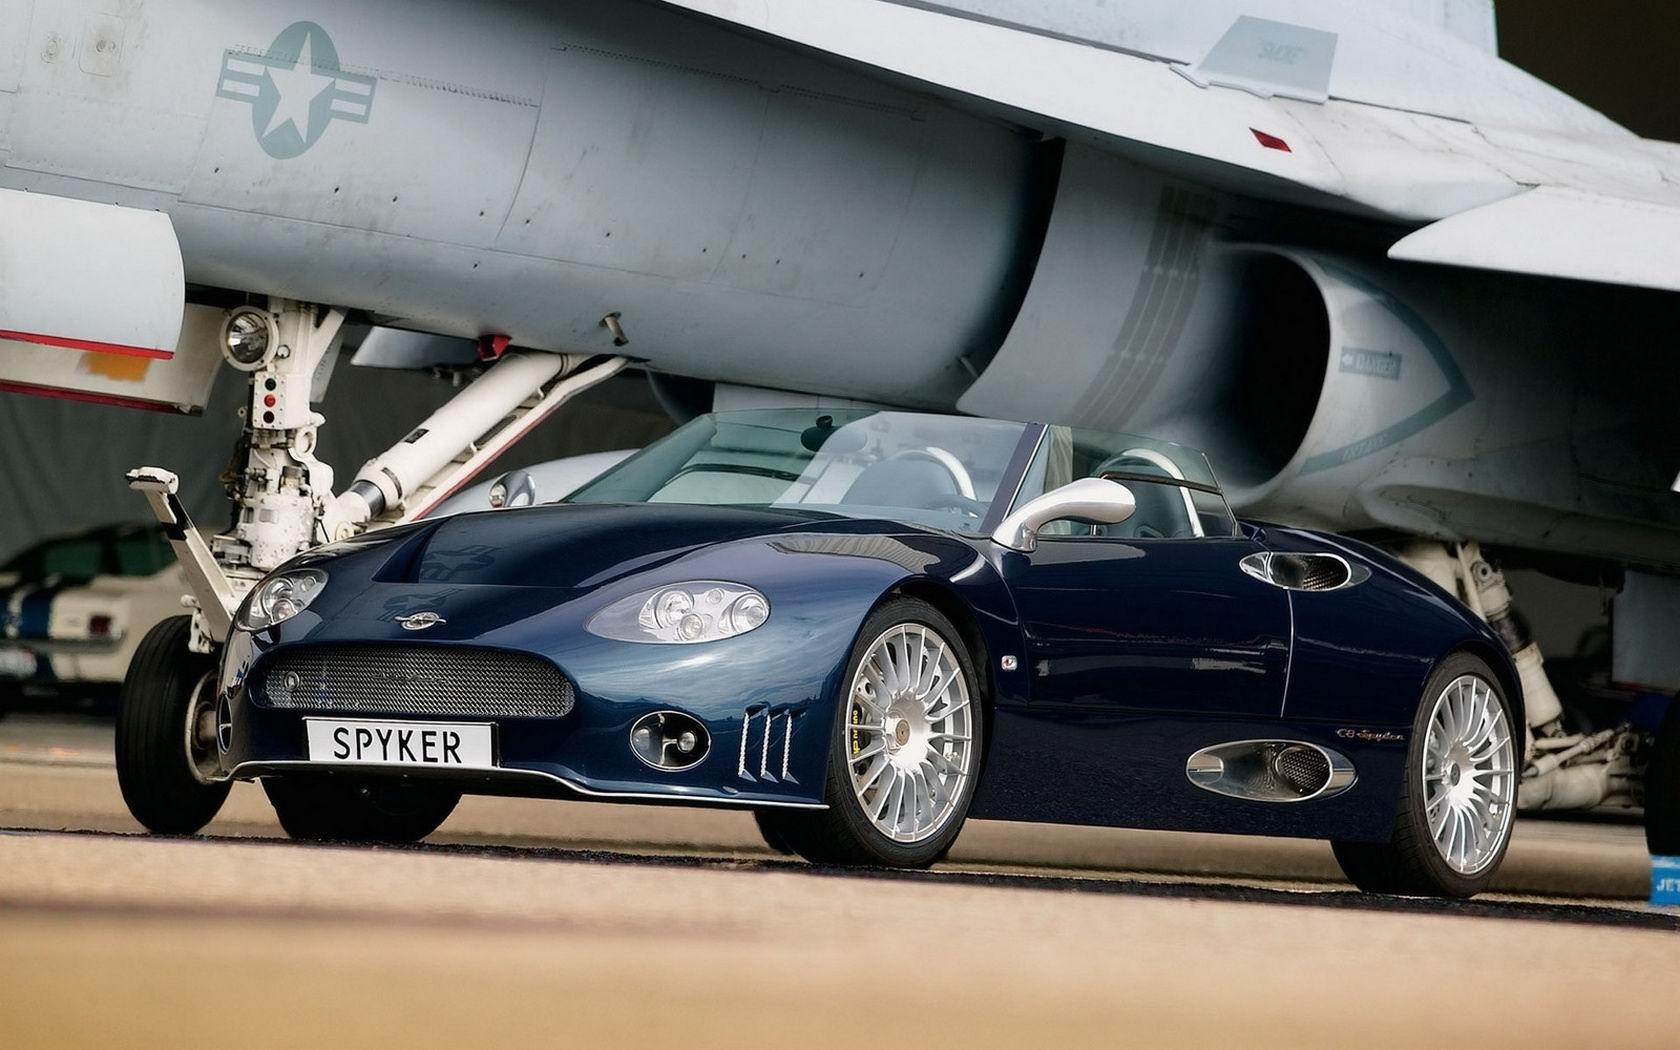 Spyker wallpapers HD quality